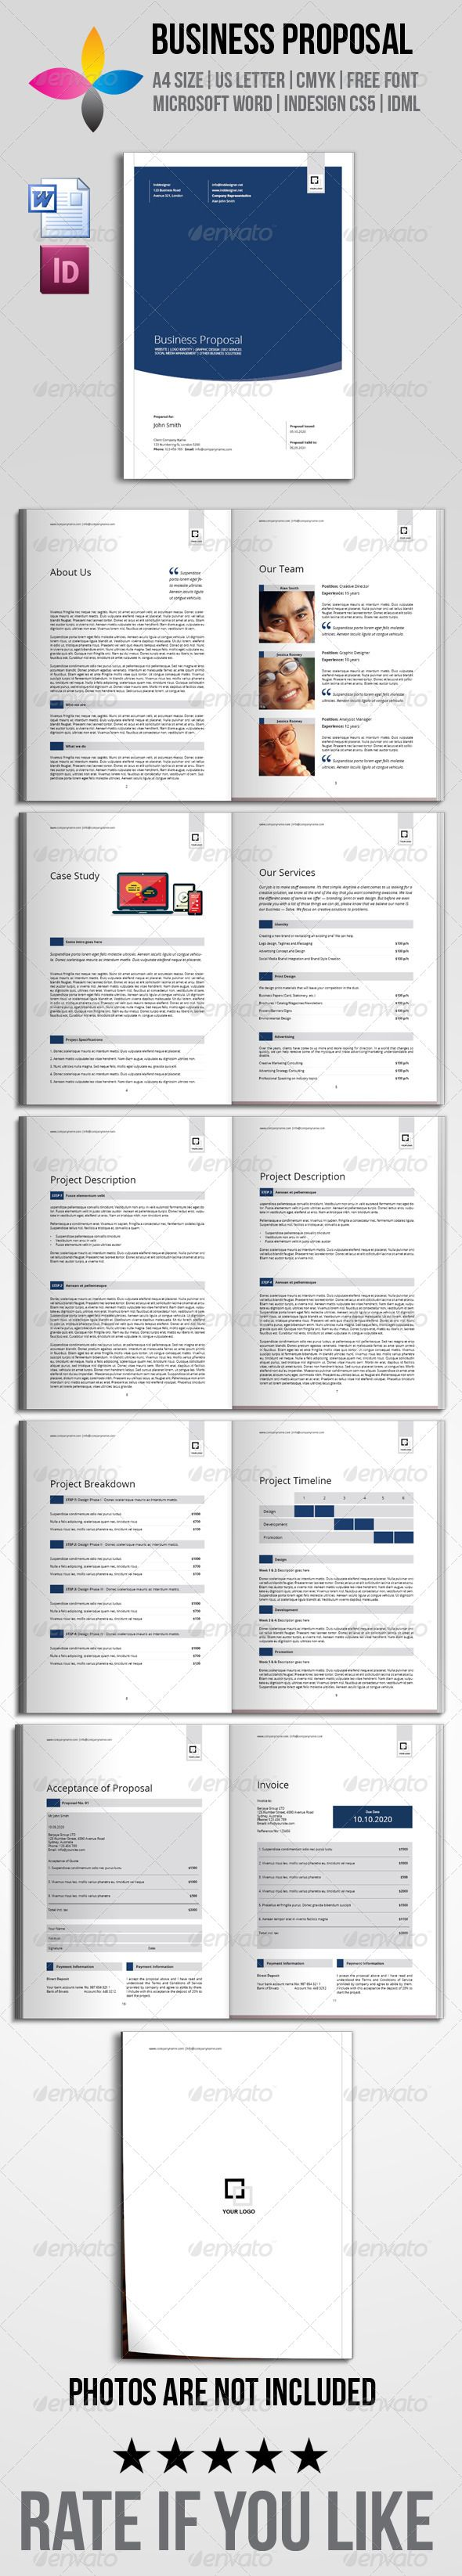 Business Proposal By Inddesigner 12 Pages A4 8 2677a 11 6929 Us